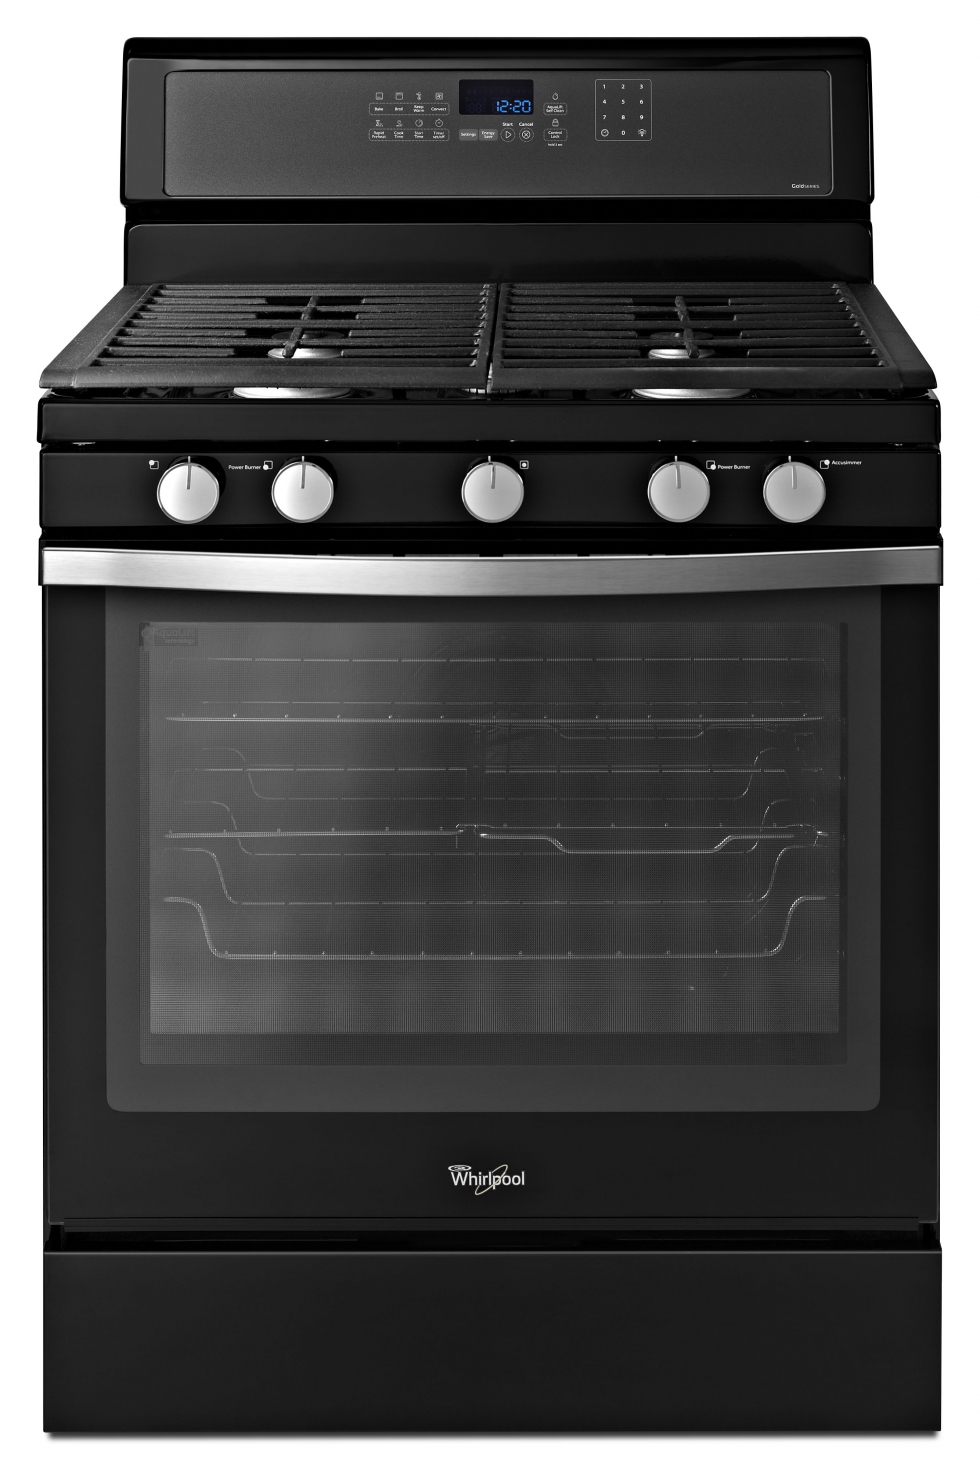 Whirlpool Gold Gas Range Black